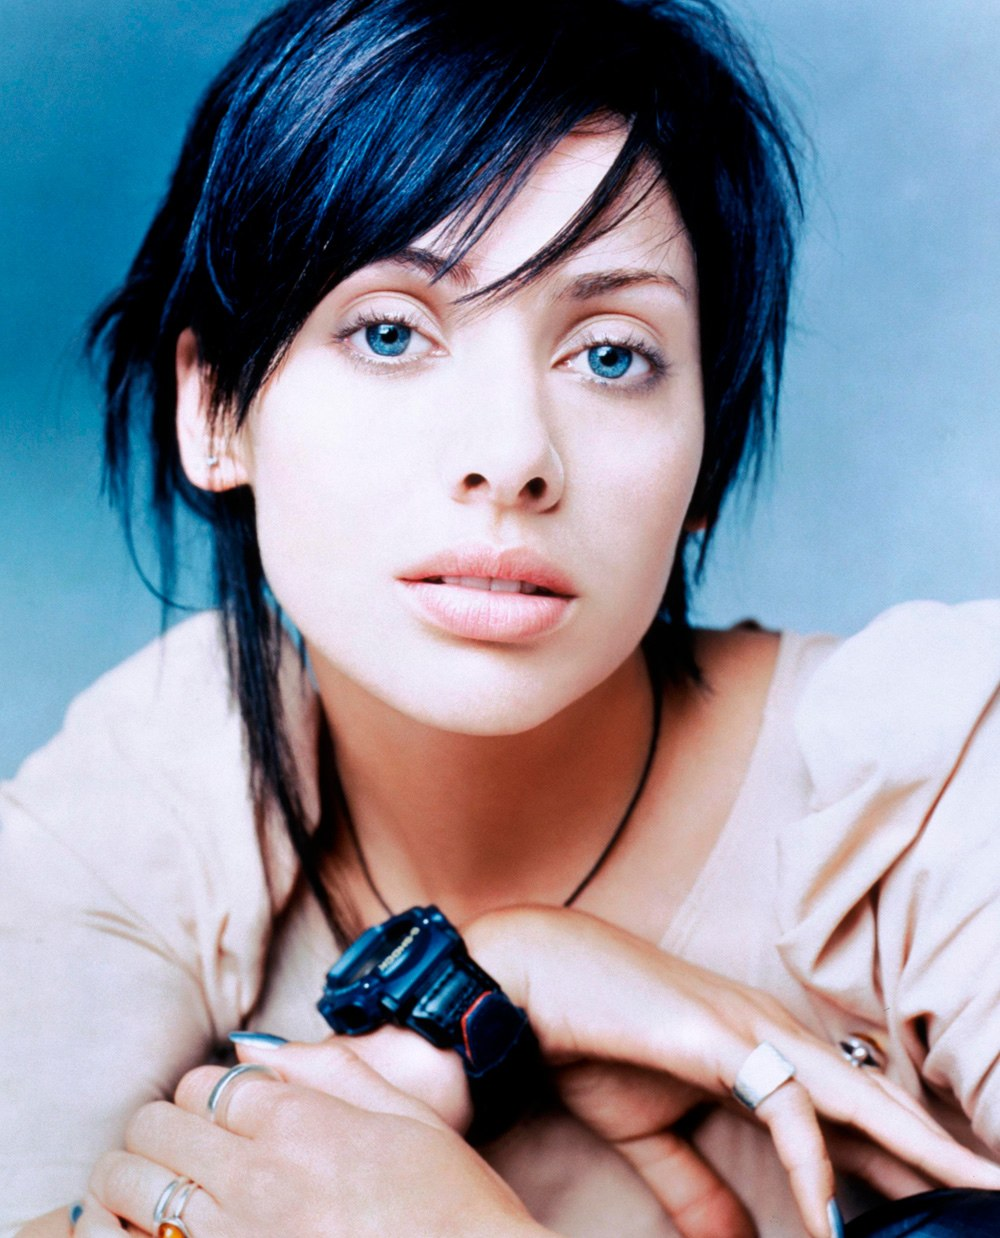 Natalie Imbruglia To Return With Her First Album In 5